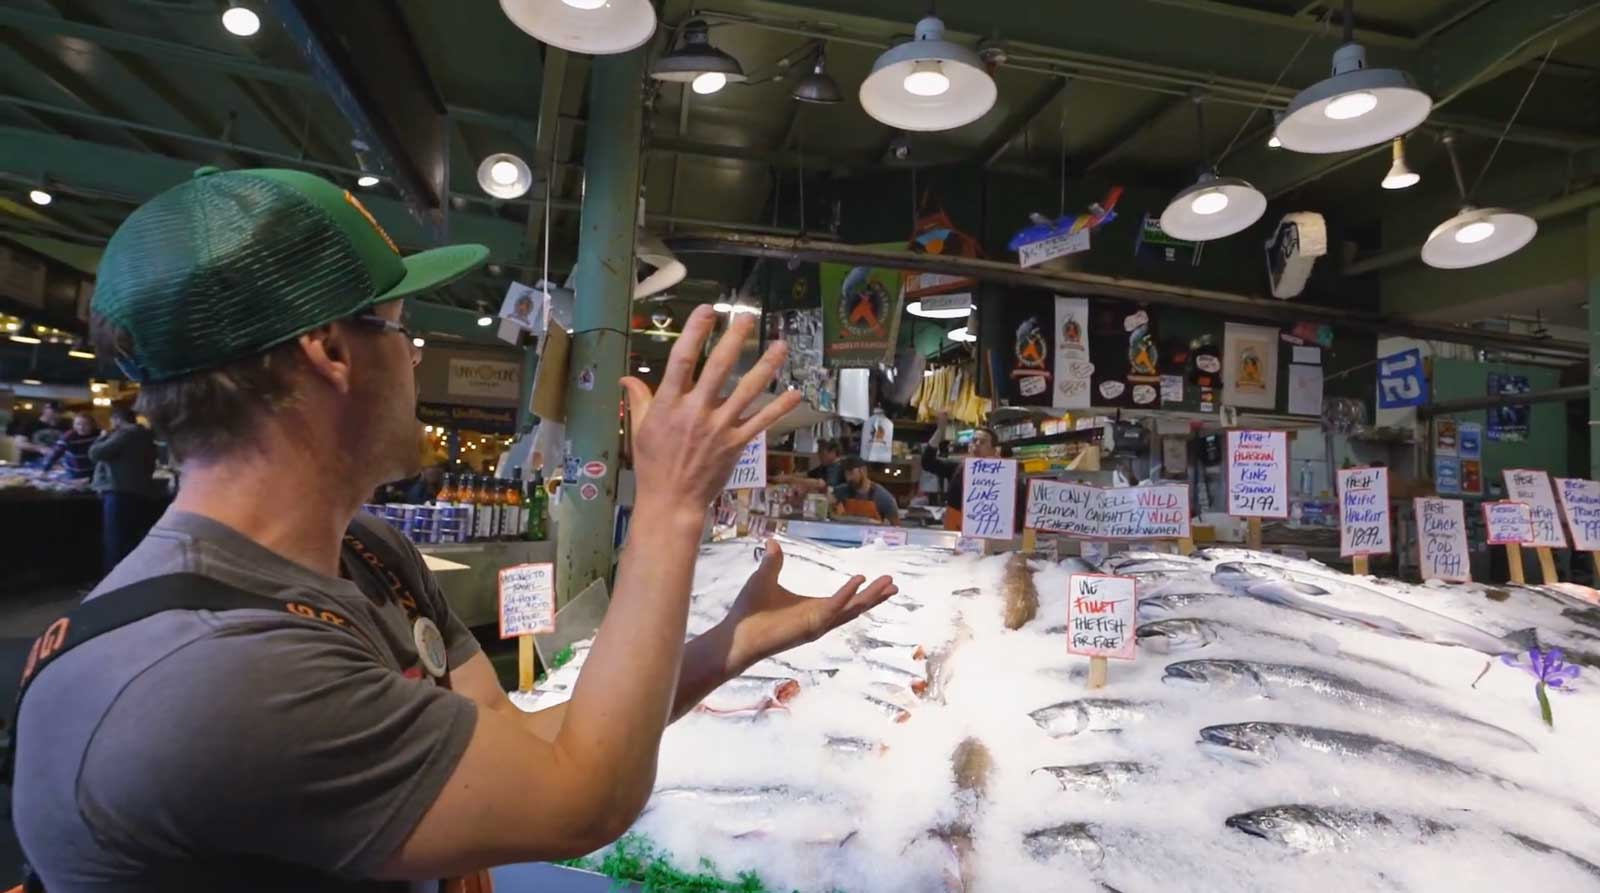 Pike Place Fishmonger Throwing and catching a fish